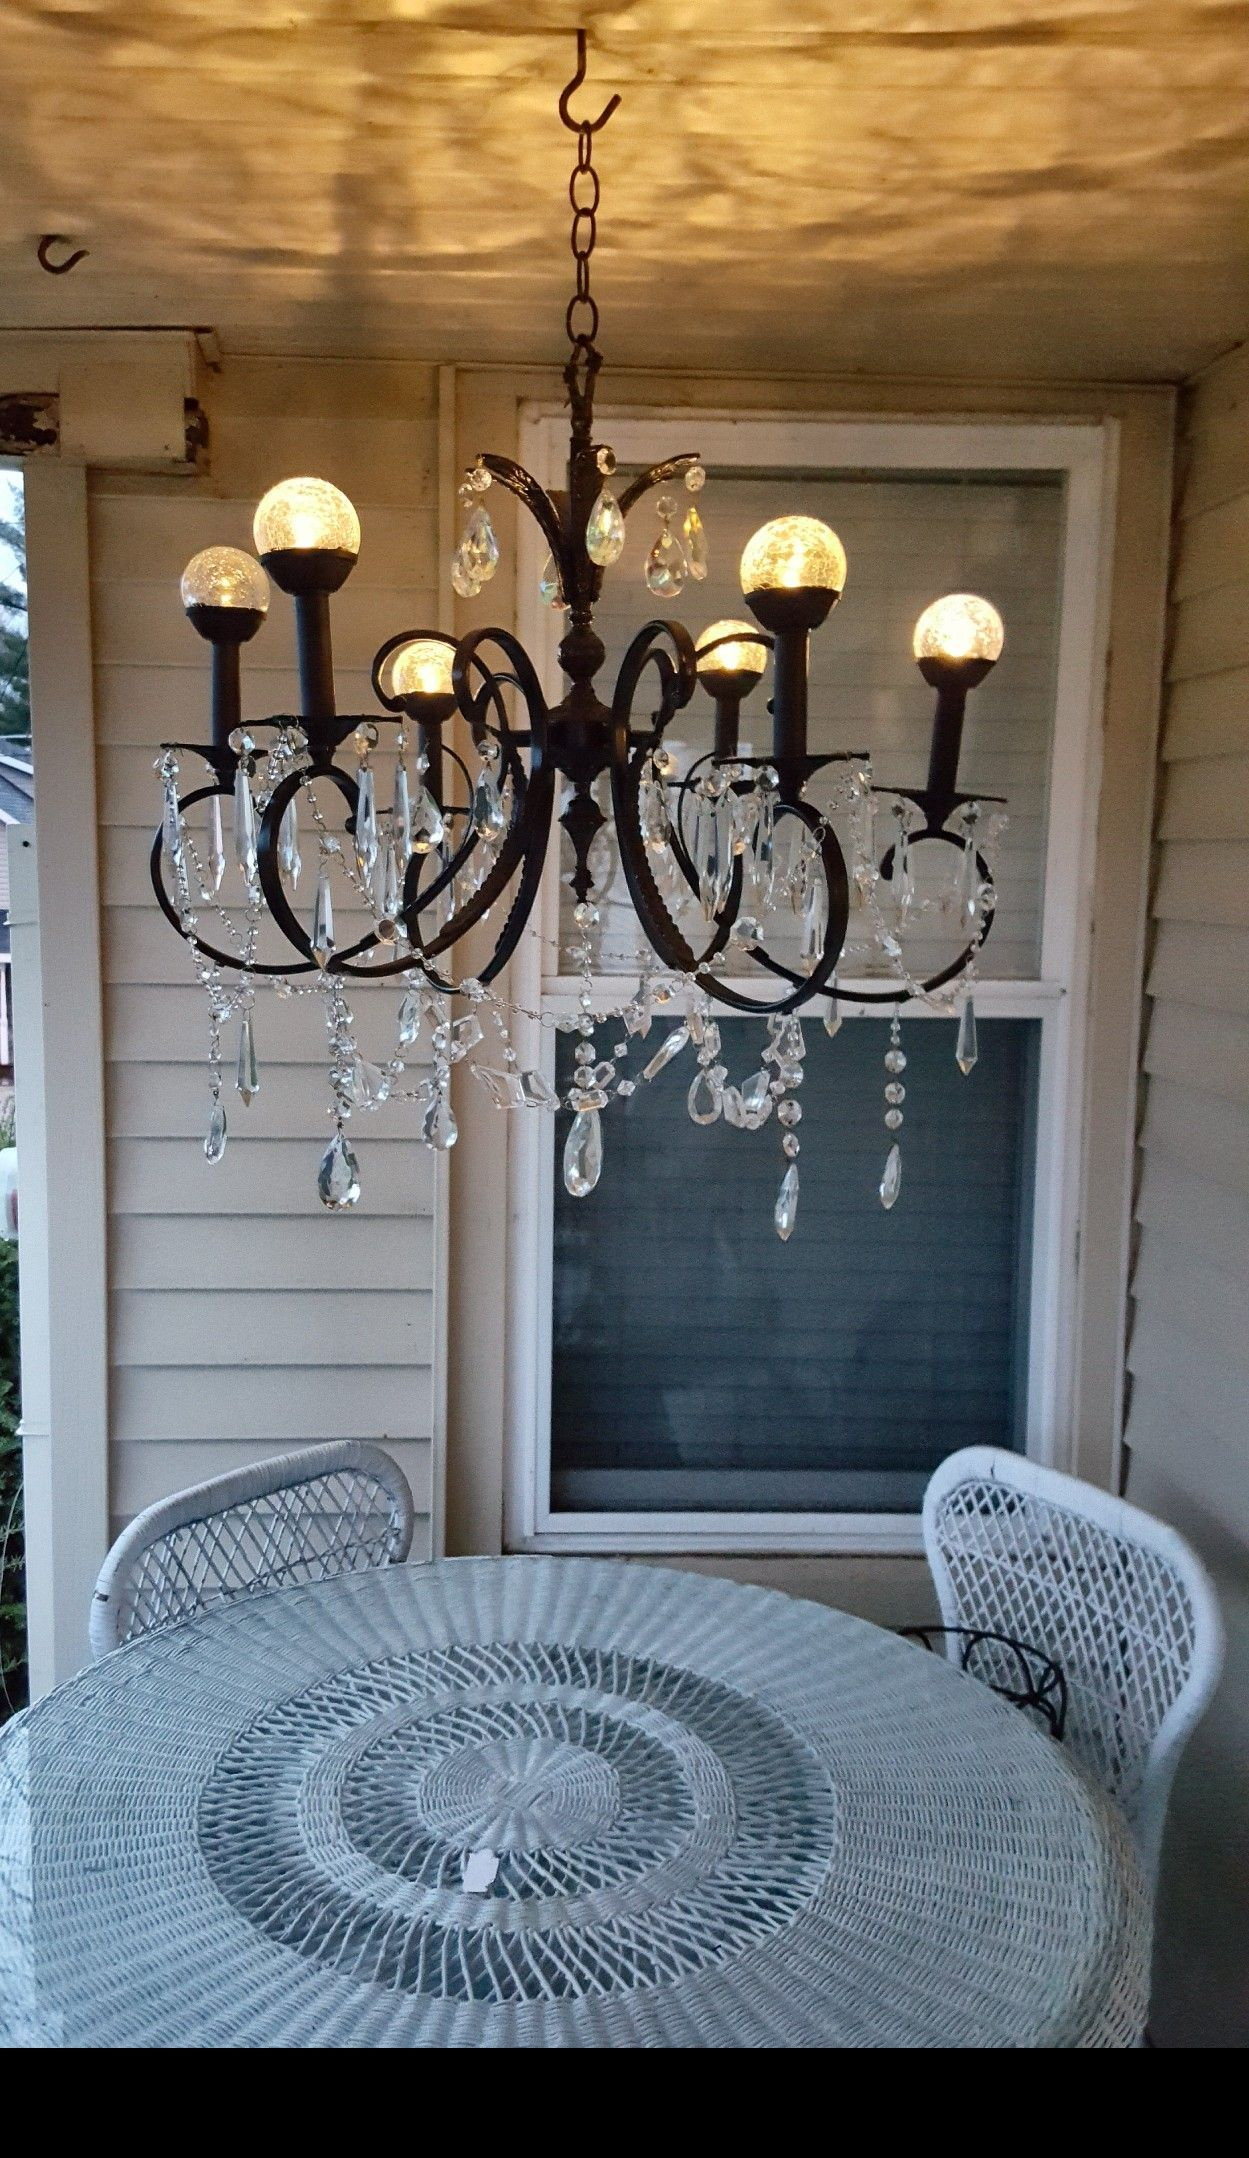 solar powered chandelier on recycled this awful old chandelier into a new beautiful outdoor solar chandelier with a little spray p solar chandelier old chandelier solar chandelier outdoor pinterest